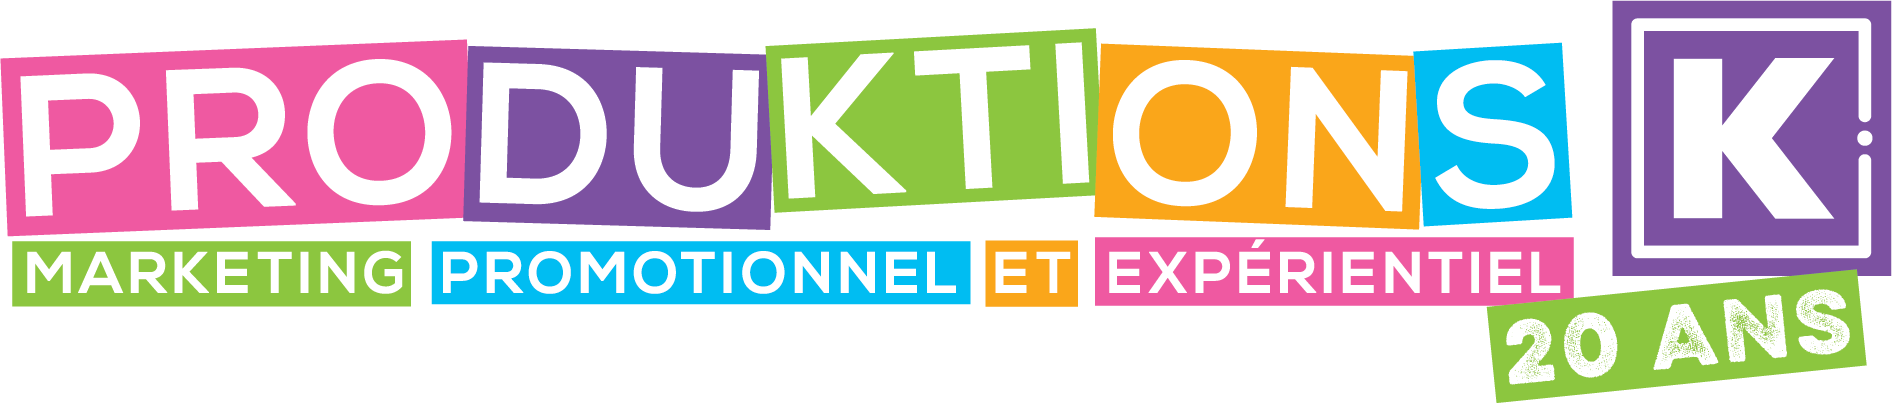 Productions K | Marketing promotionnel et expérientiel